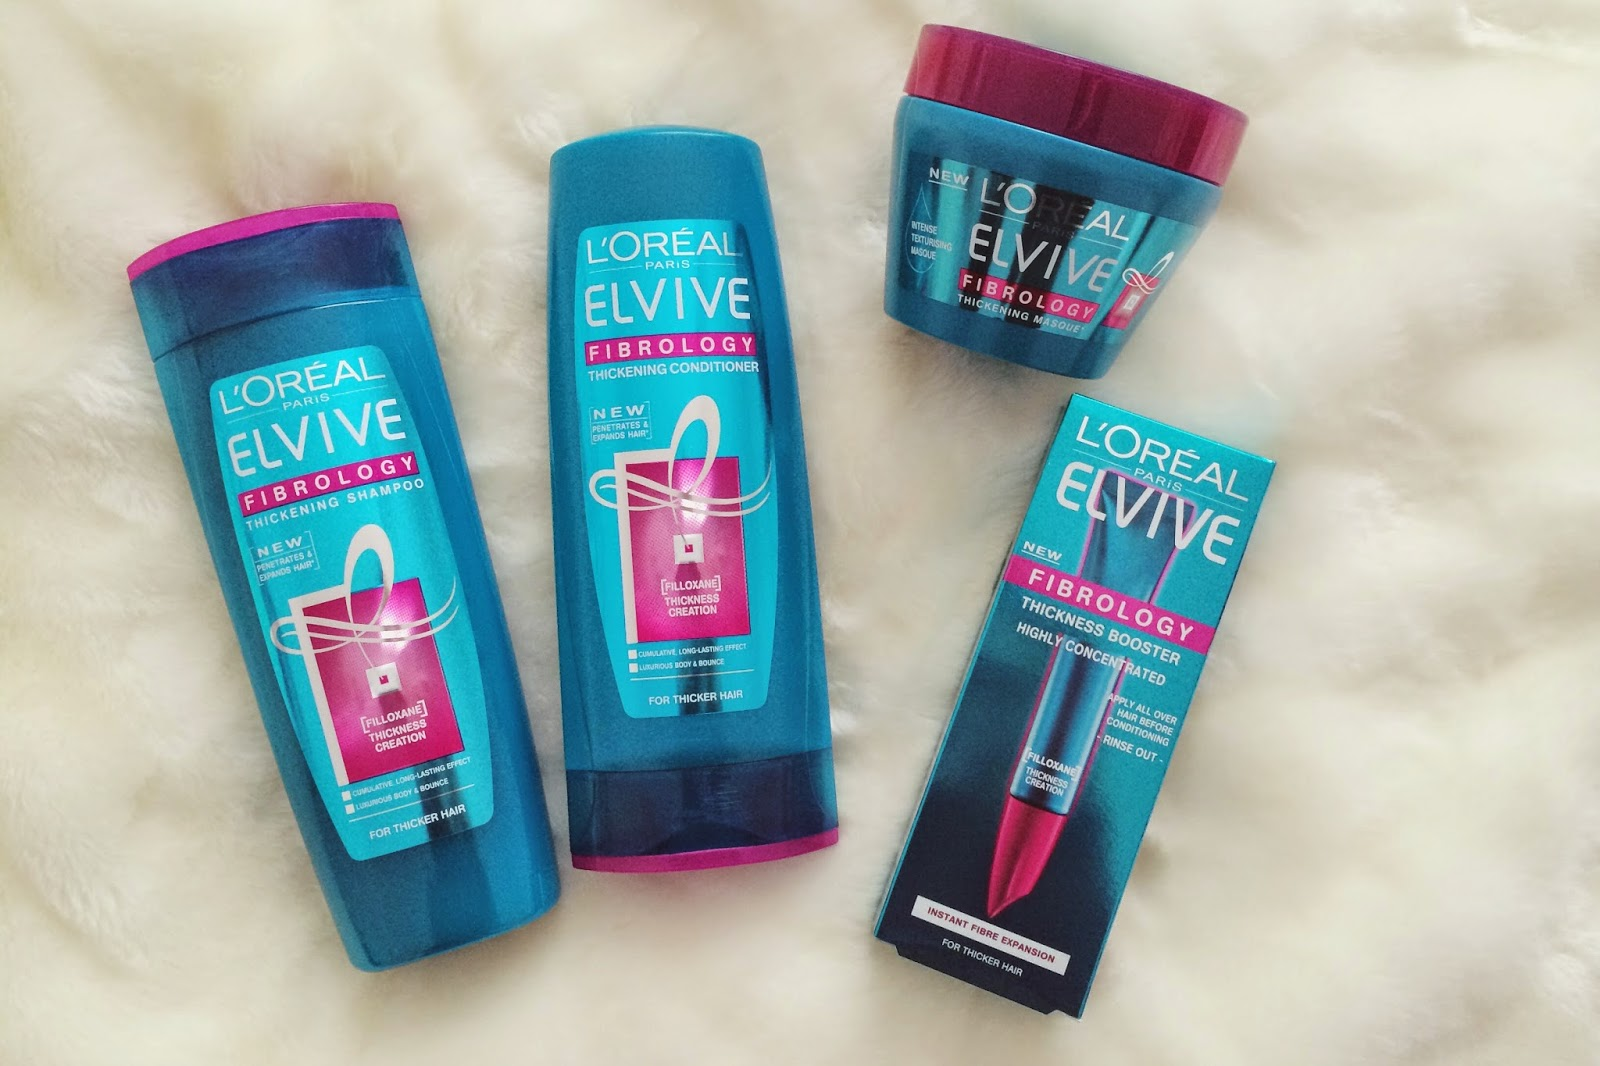 FashionFake, a UK fashion and lifestyle blog. L'Oreal Elvive Fibrology review, does the L'Oreal Elvive Fibrology mask and serum make a difference to hair thickness?